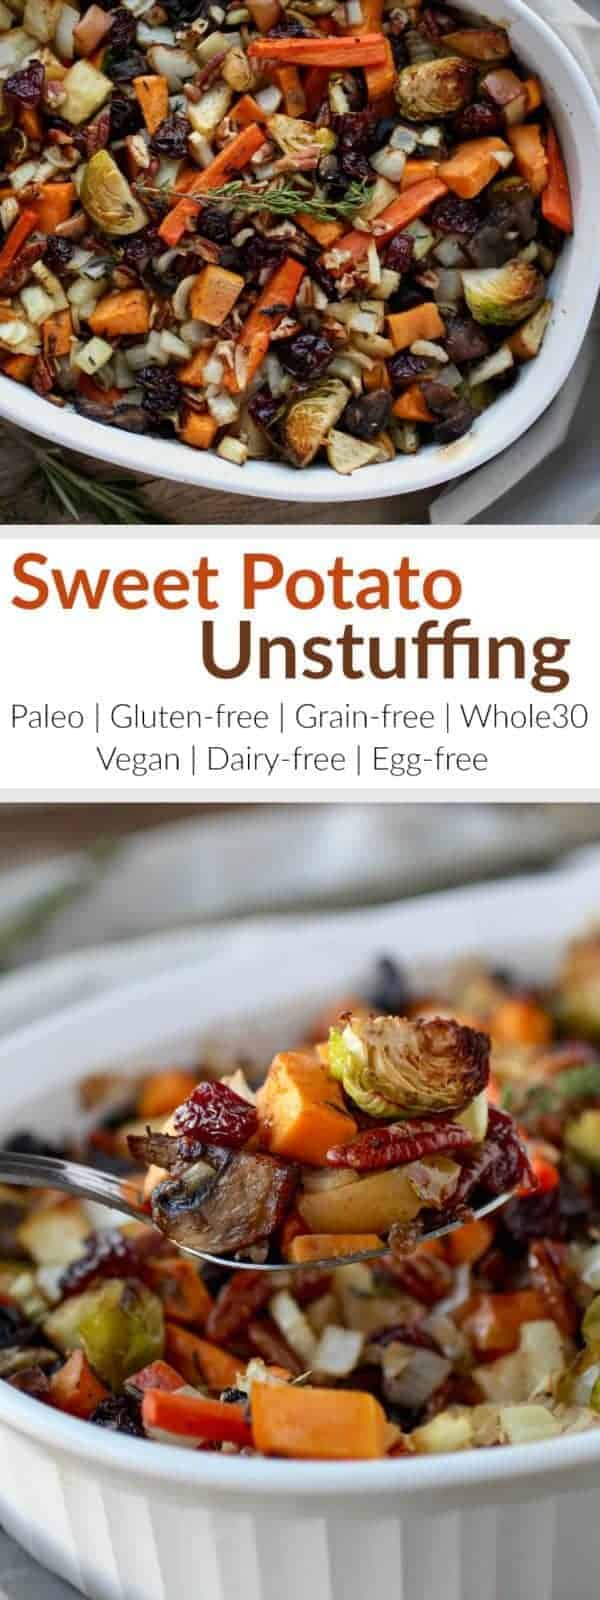 Gluten-Free Sweet Potato Unstuffing makes for a crowd-pleasing Thanksgiving side-dish or a tasty addition to your weeknight menu. It has the flavors of stuffing but without the bread. It's loaded with a variety of veggies with the addition of dried cherries, apples, pecans, and fresh herbs. The ingredients come together to create quite a delicious and healthy 'stuffing' side-dish   Whole30   Paleo   Vegan   therealfoodrds.com